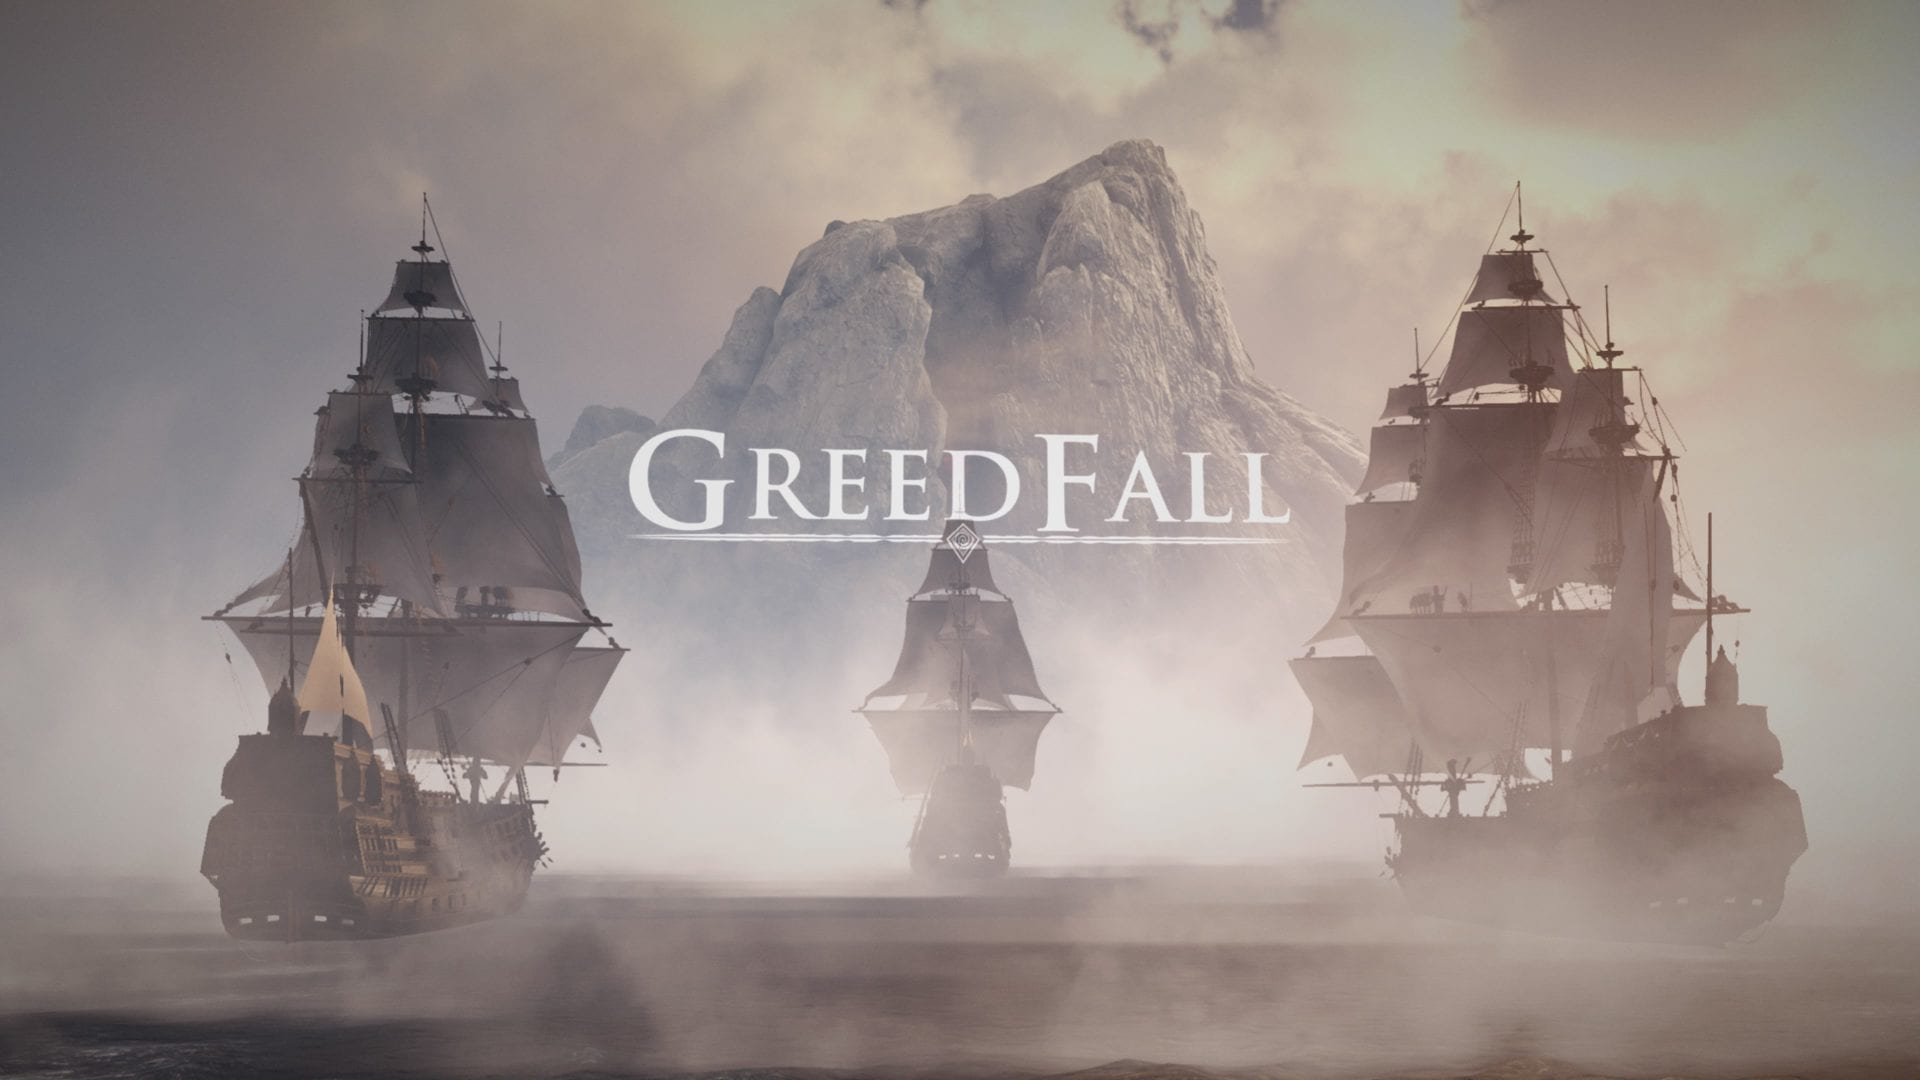 GreedFall, legendary